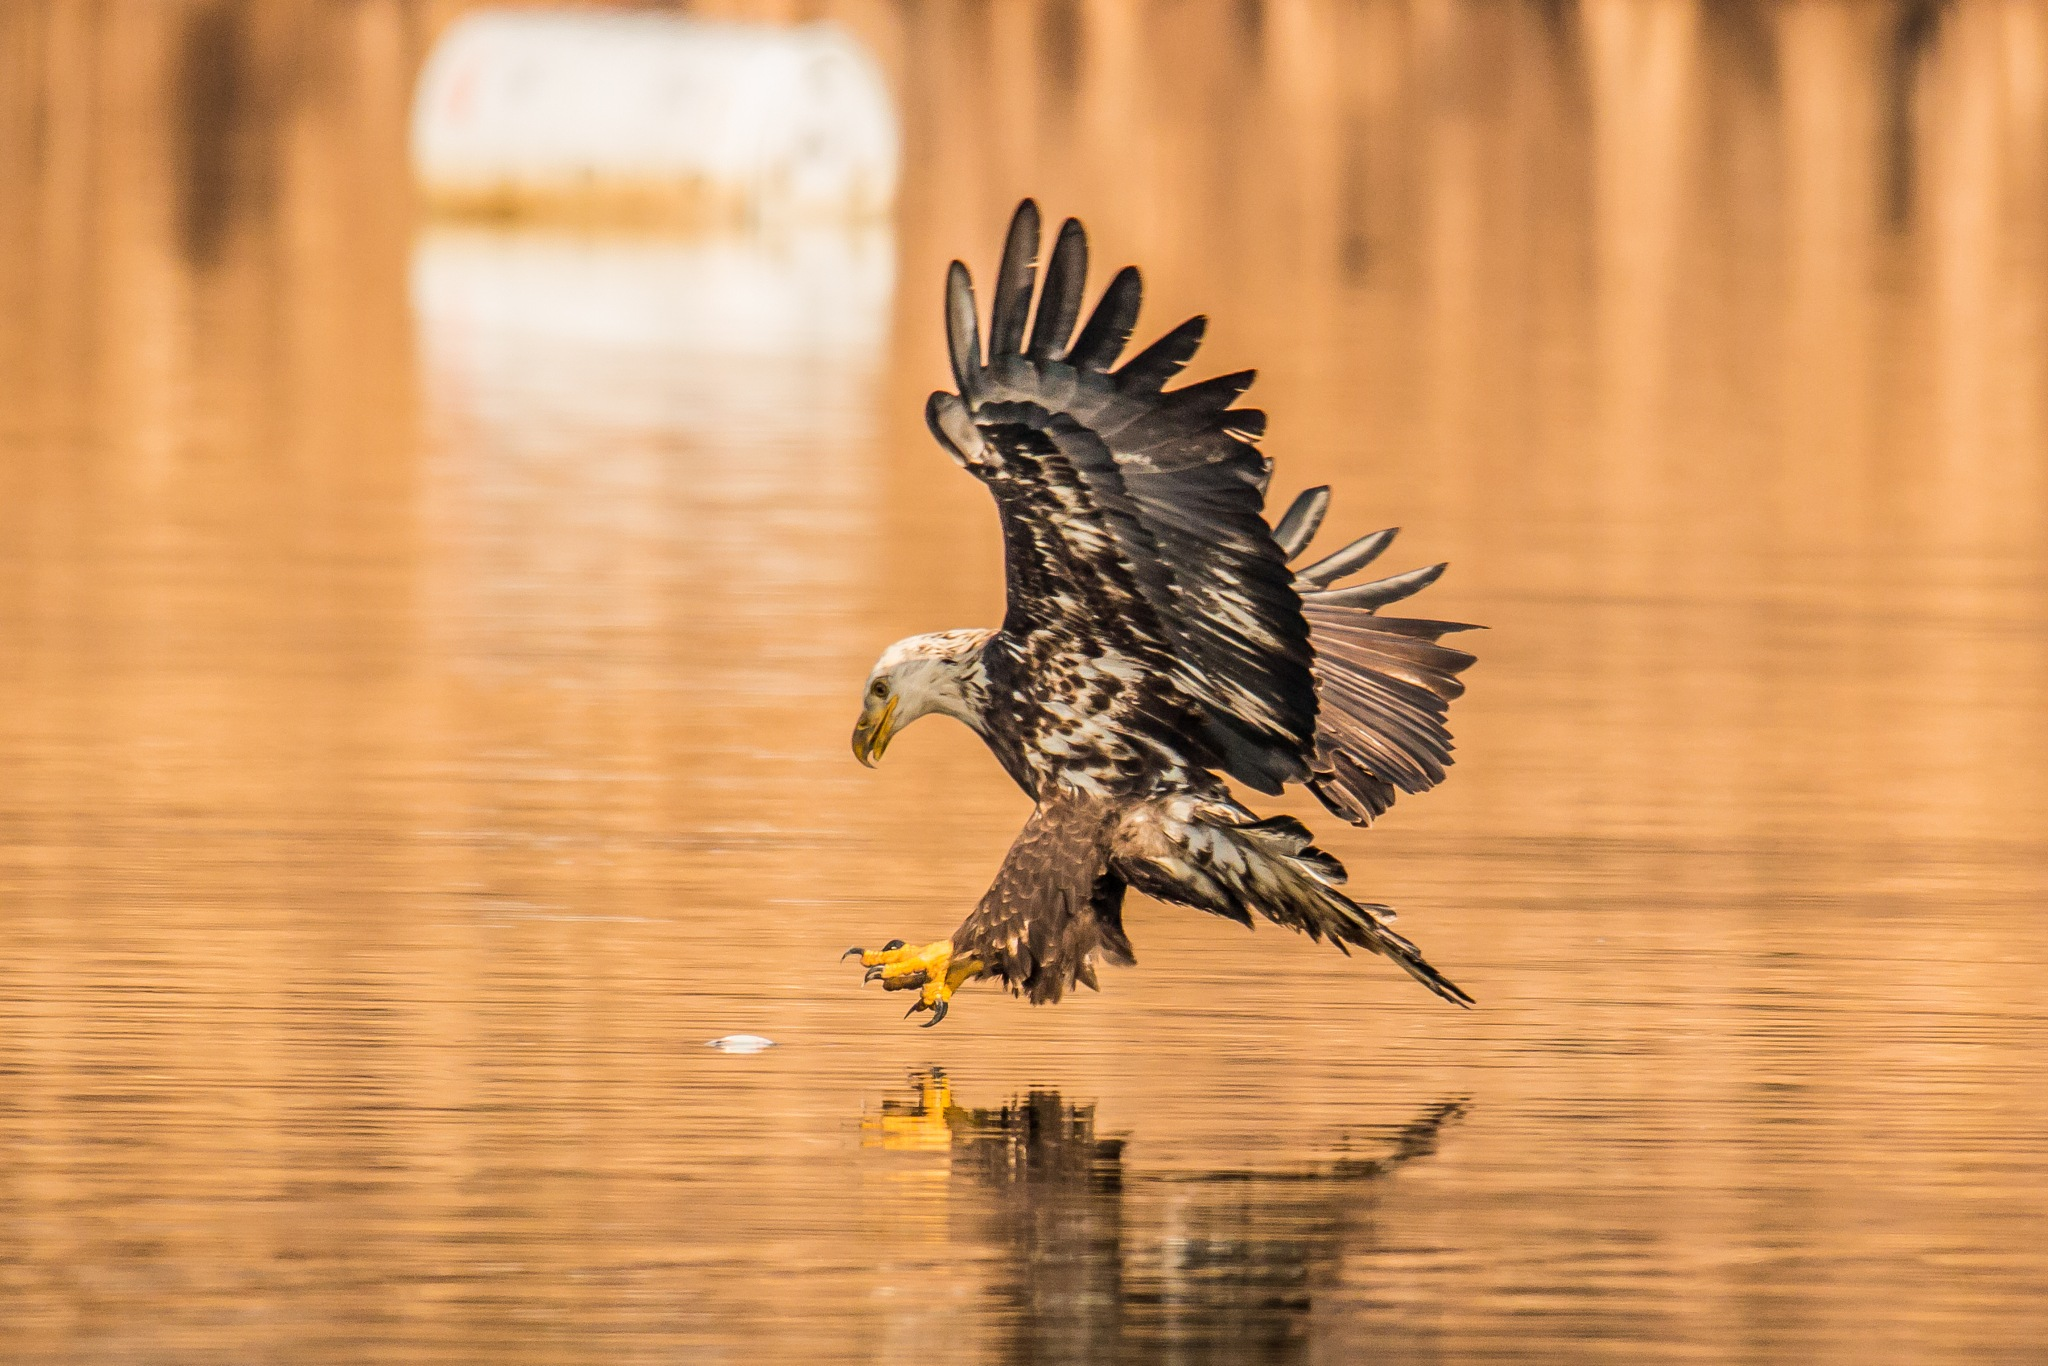 Eagle Fishing by Werner R. Ennesser